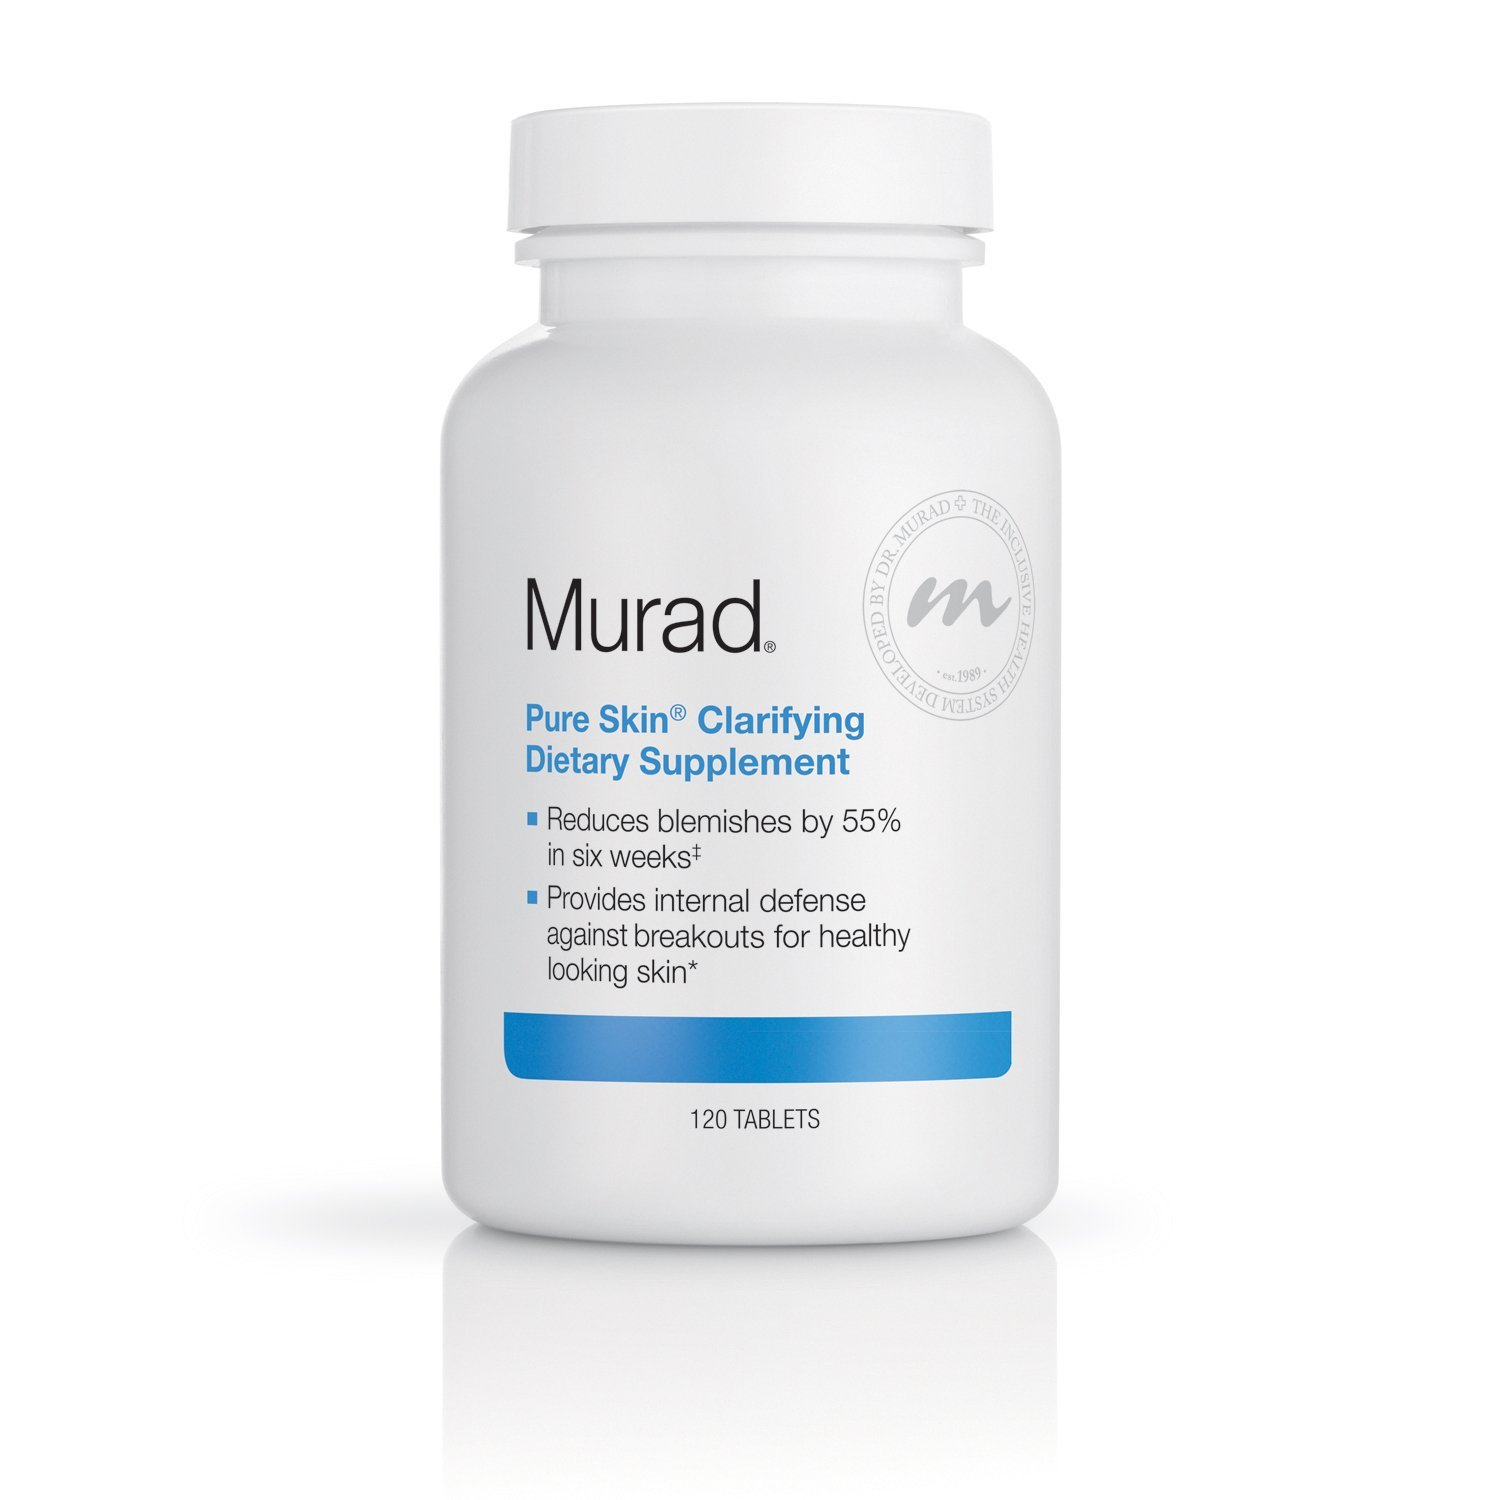 Murad skin clarifying supplements